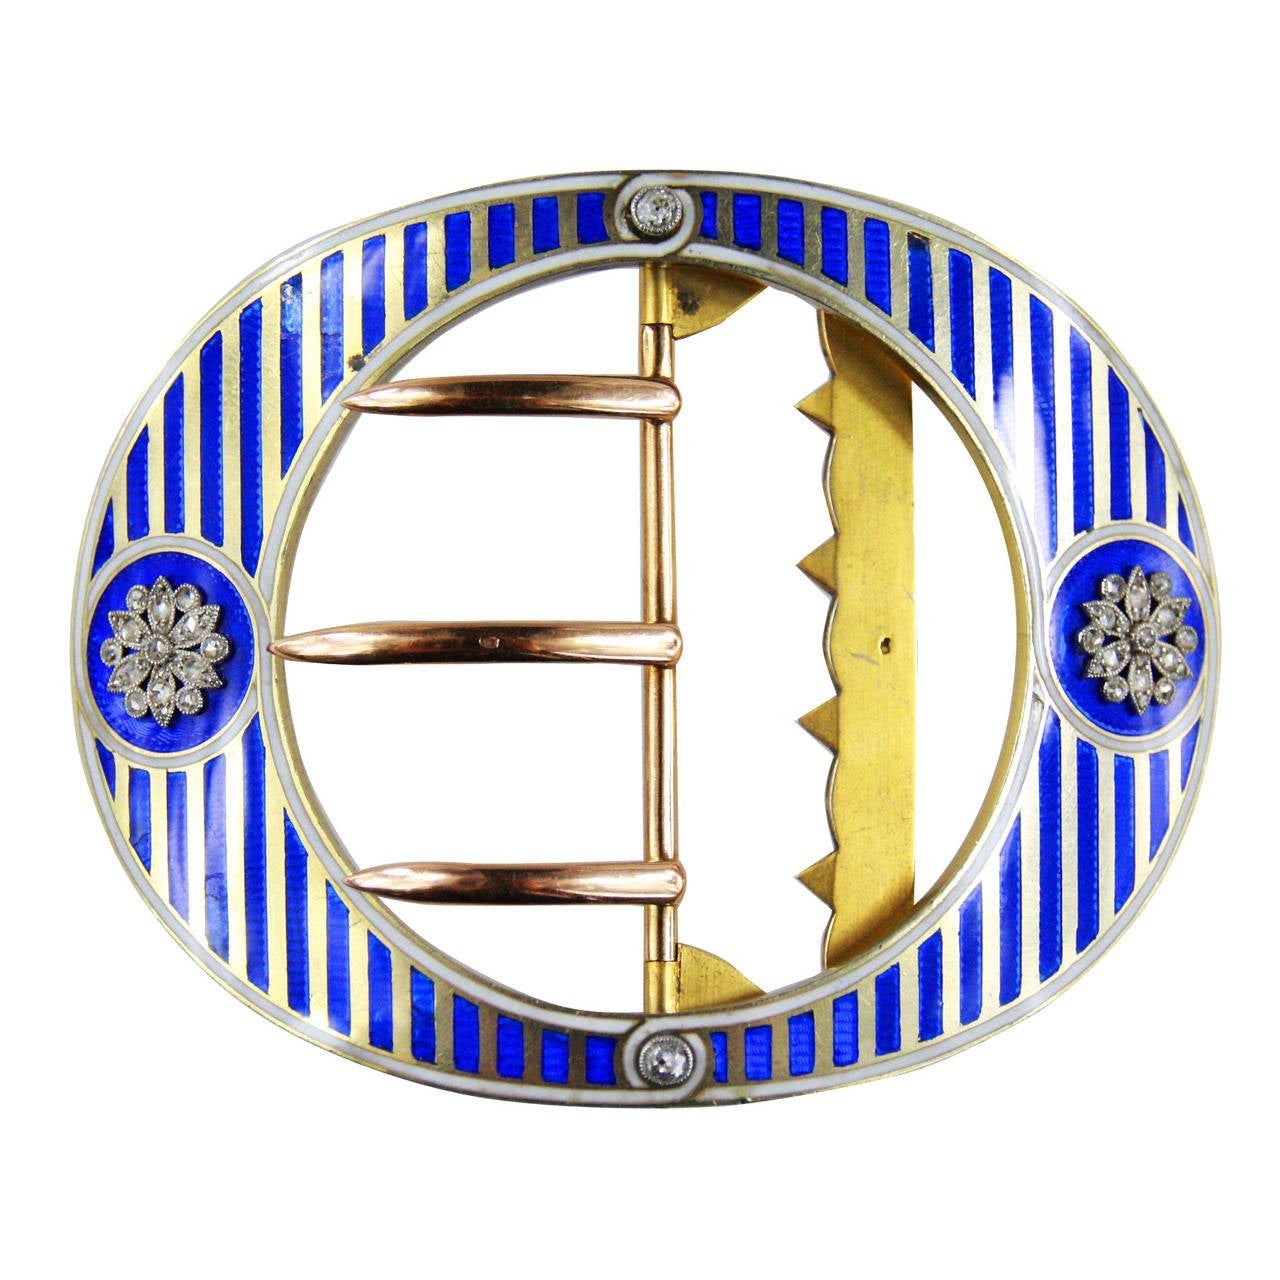 Cartier Paris Rare Blue Enamel Diamond Vermeil Belt Buckle